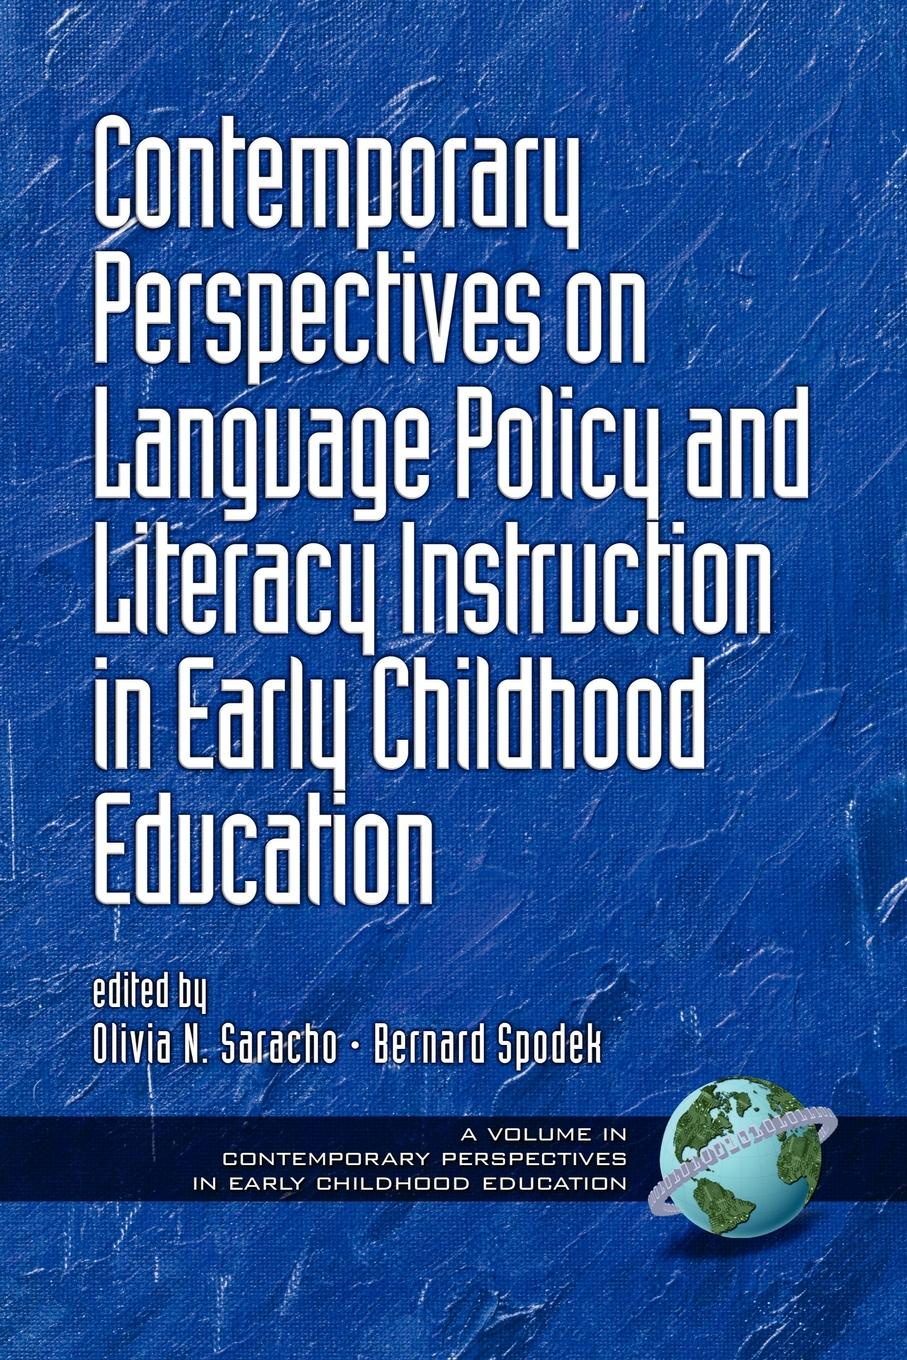 Contemporary Perspectives on Language Policy and Literacy Instruction in Early Childhood Education (PB) contemporary perspectives on science and technology in early childhood education pb